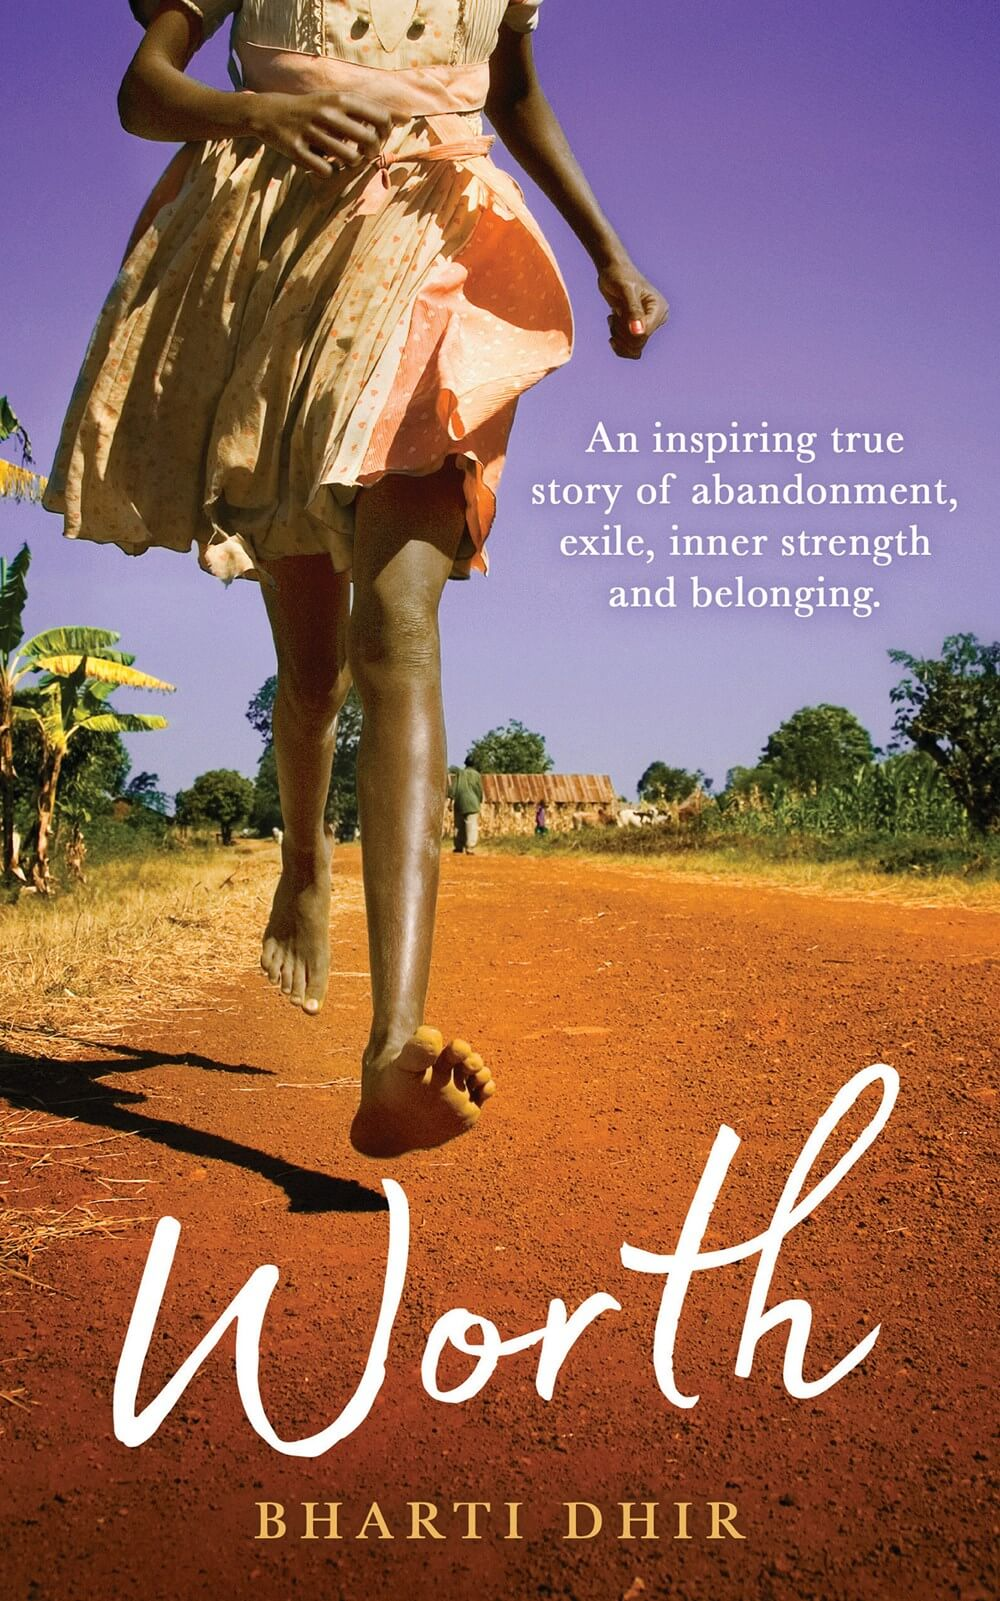 Worth: An Inspiring True Story of Abandonment, Exile, Inner Strength and Belonging